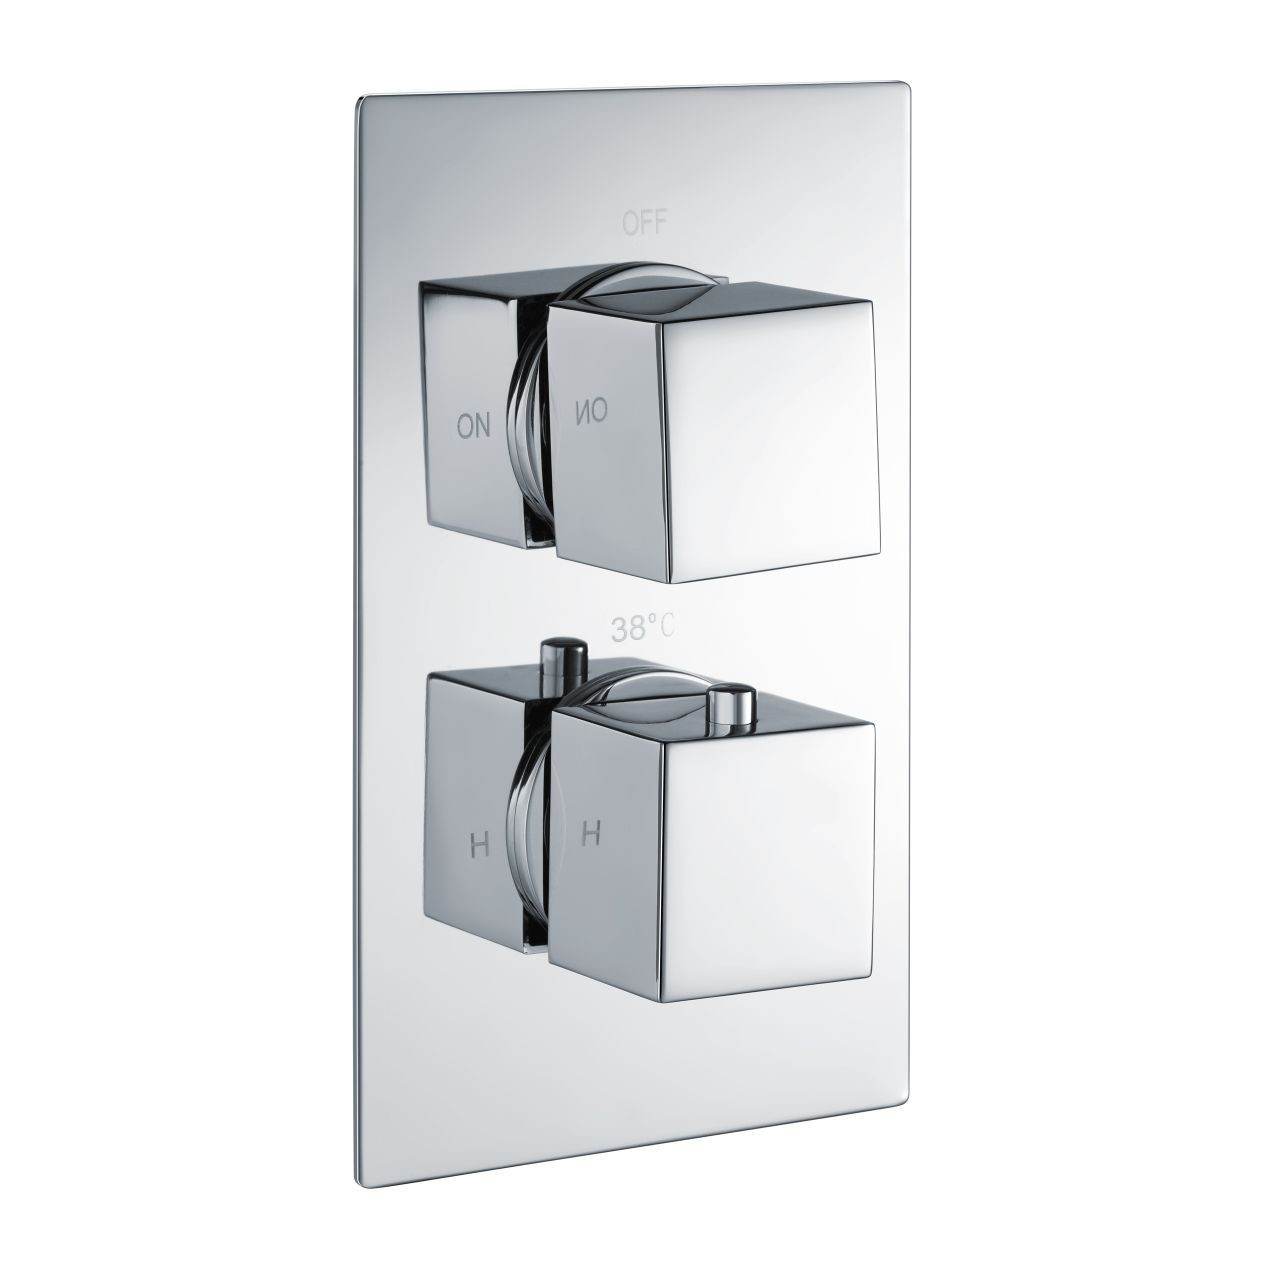 RAK Square Concealed 2 Handle Thermostatic Single Control Shower Valve - RAKSHW3201S